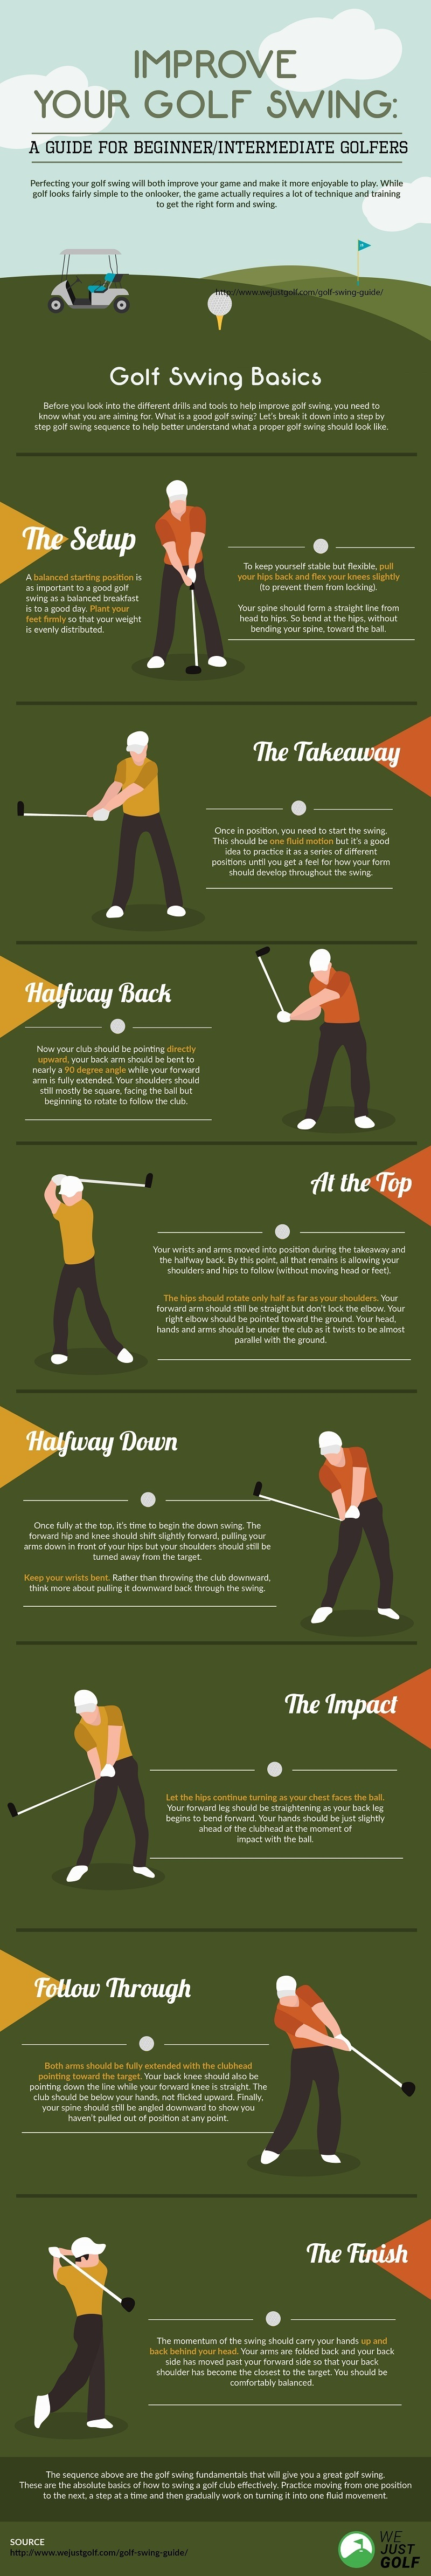 Guide To Improve Your Golf Swing